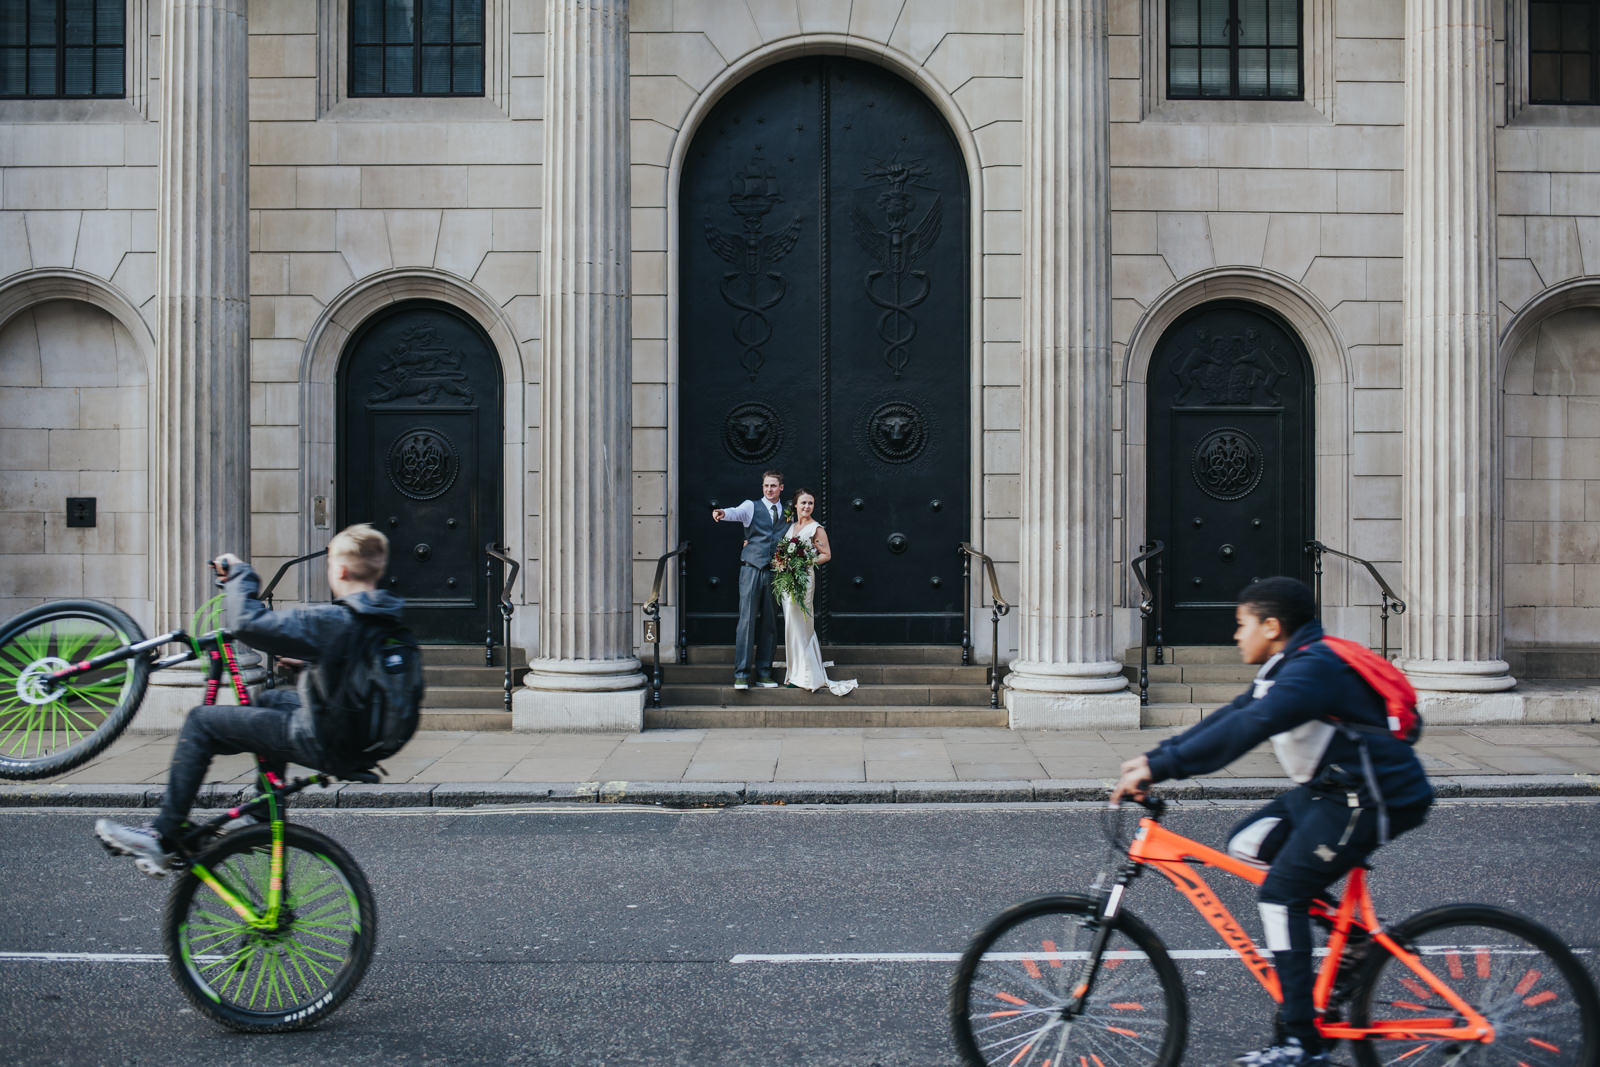 Bride and groom posing in Bank with cyclists photo bombing - Modern London wedding